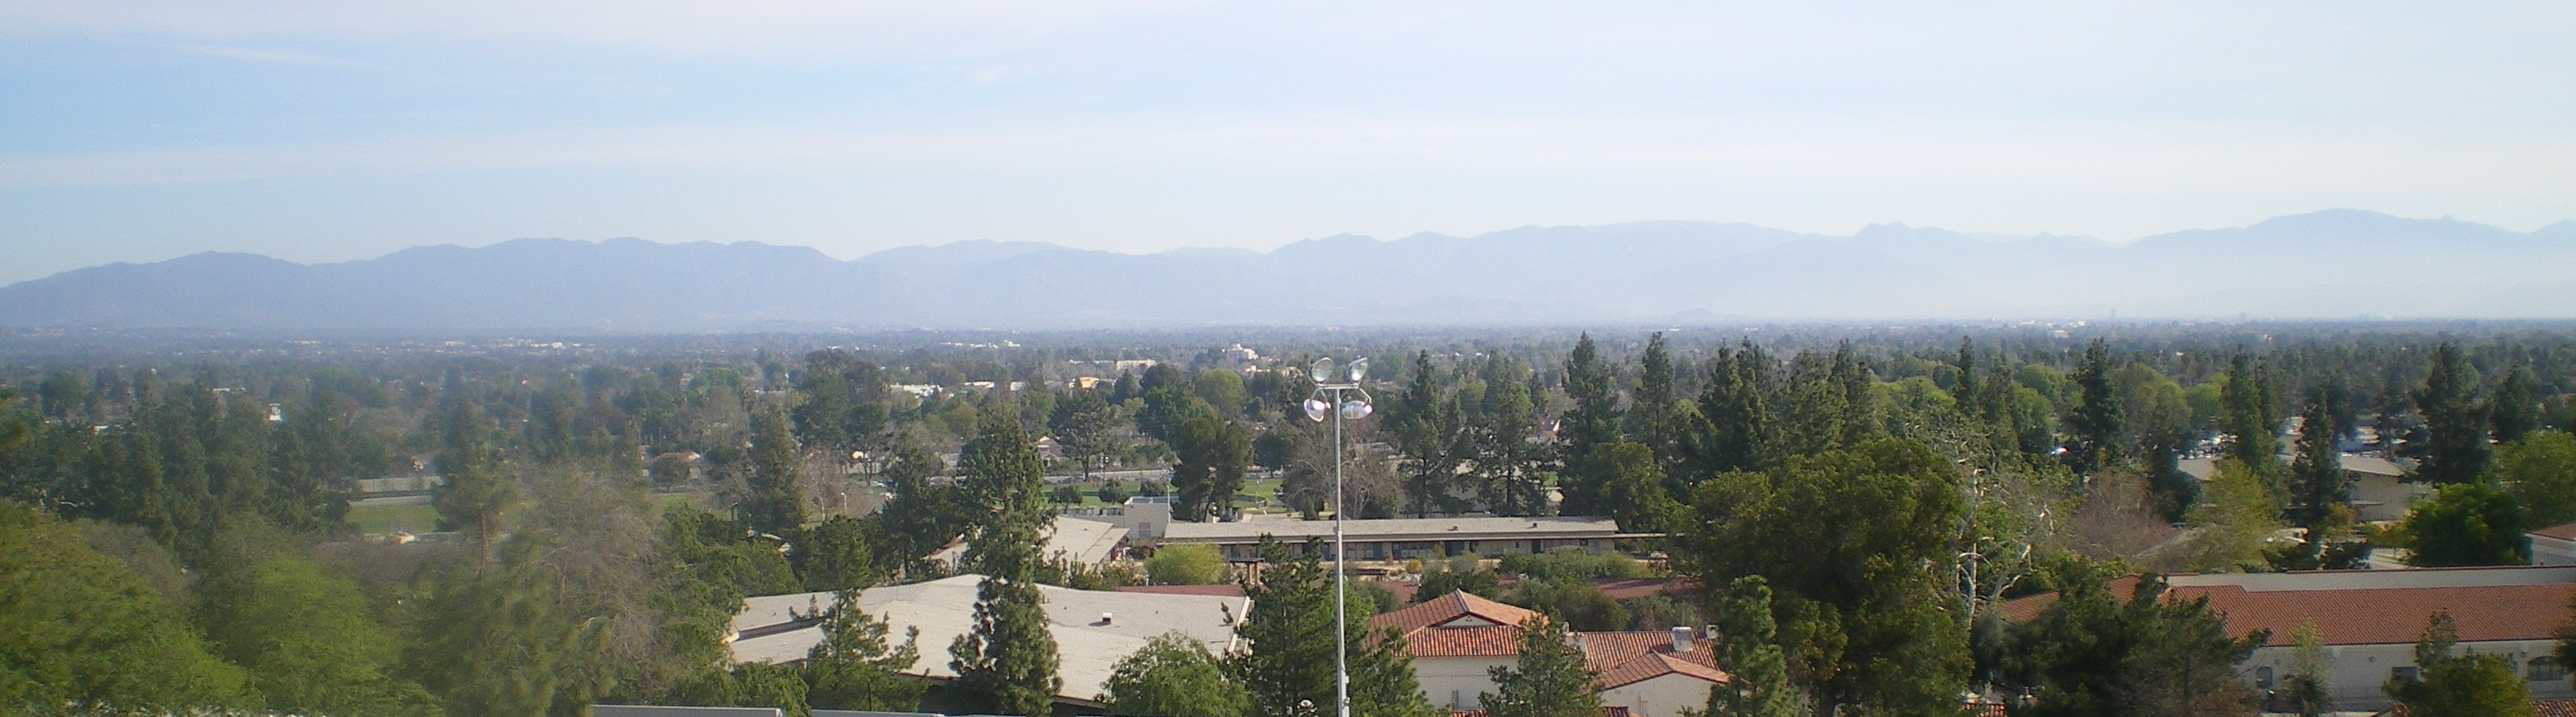 File:View from Pierce College.JPG - Wikimedia Commons